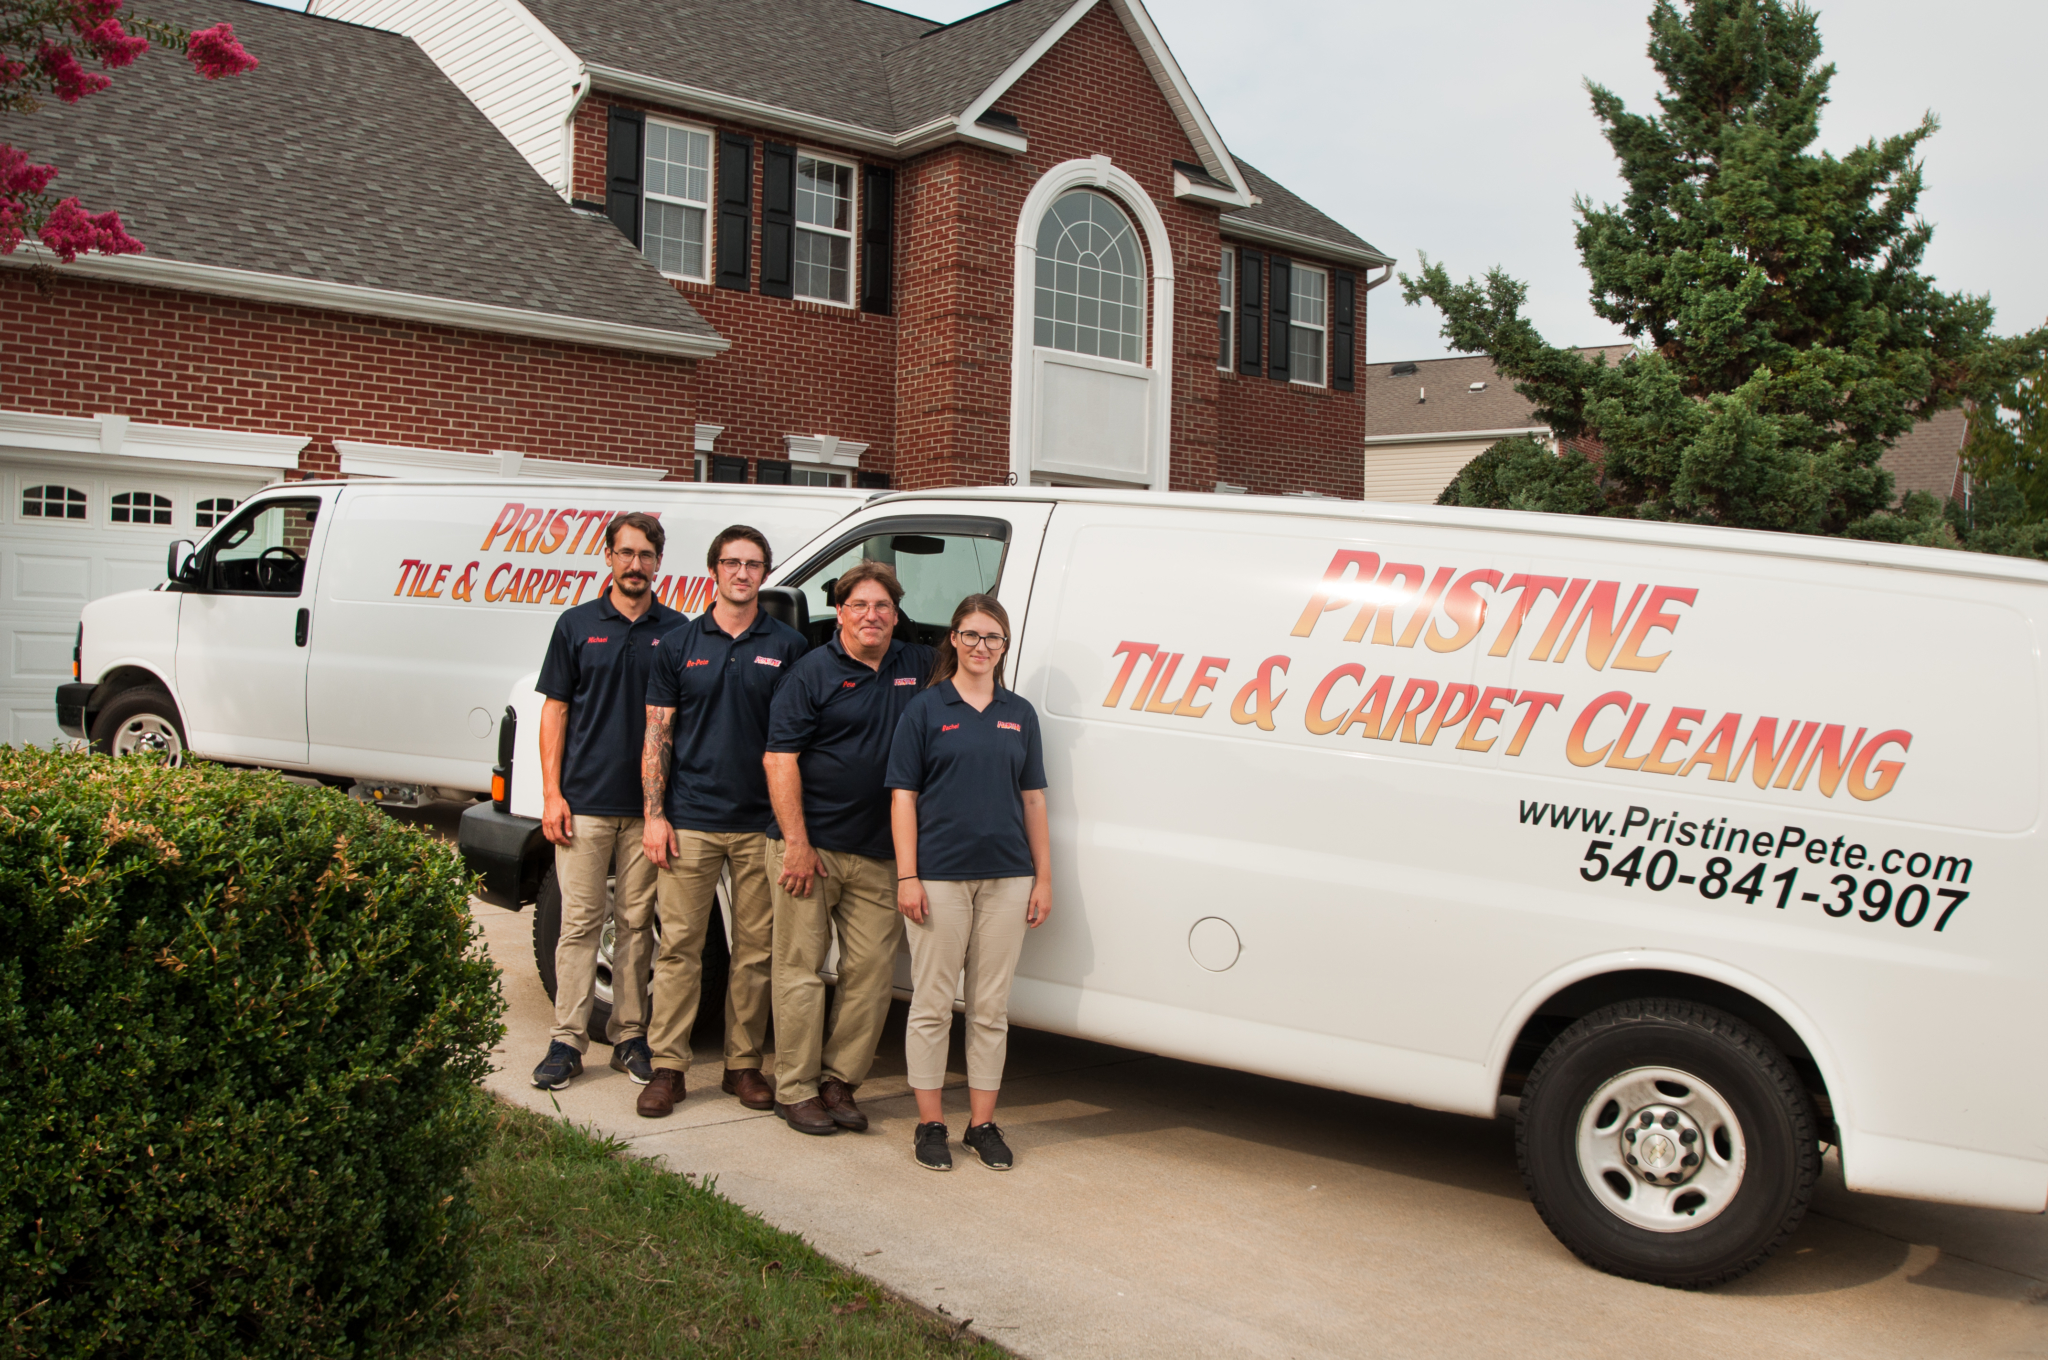 About Us - Pristine Tile & Carpet Cleaning